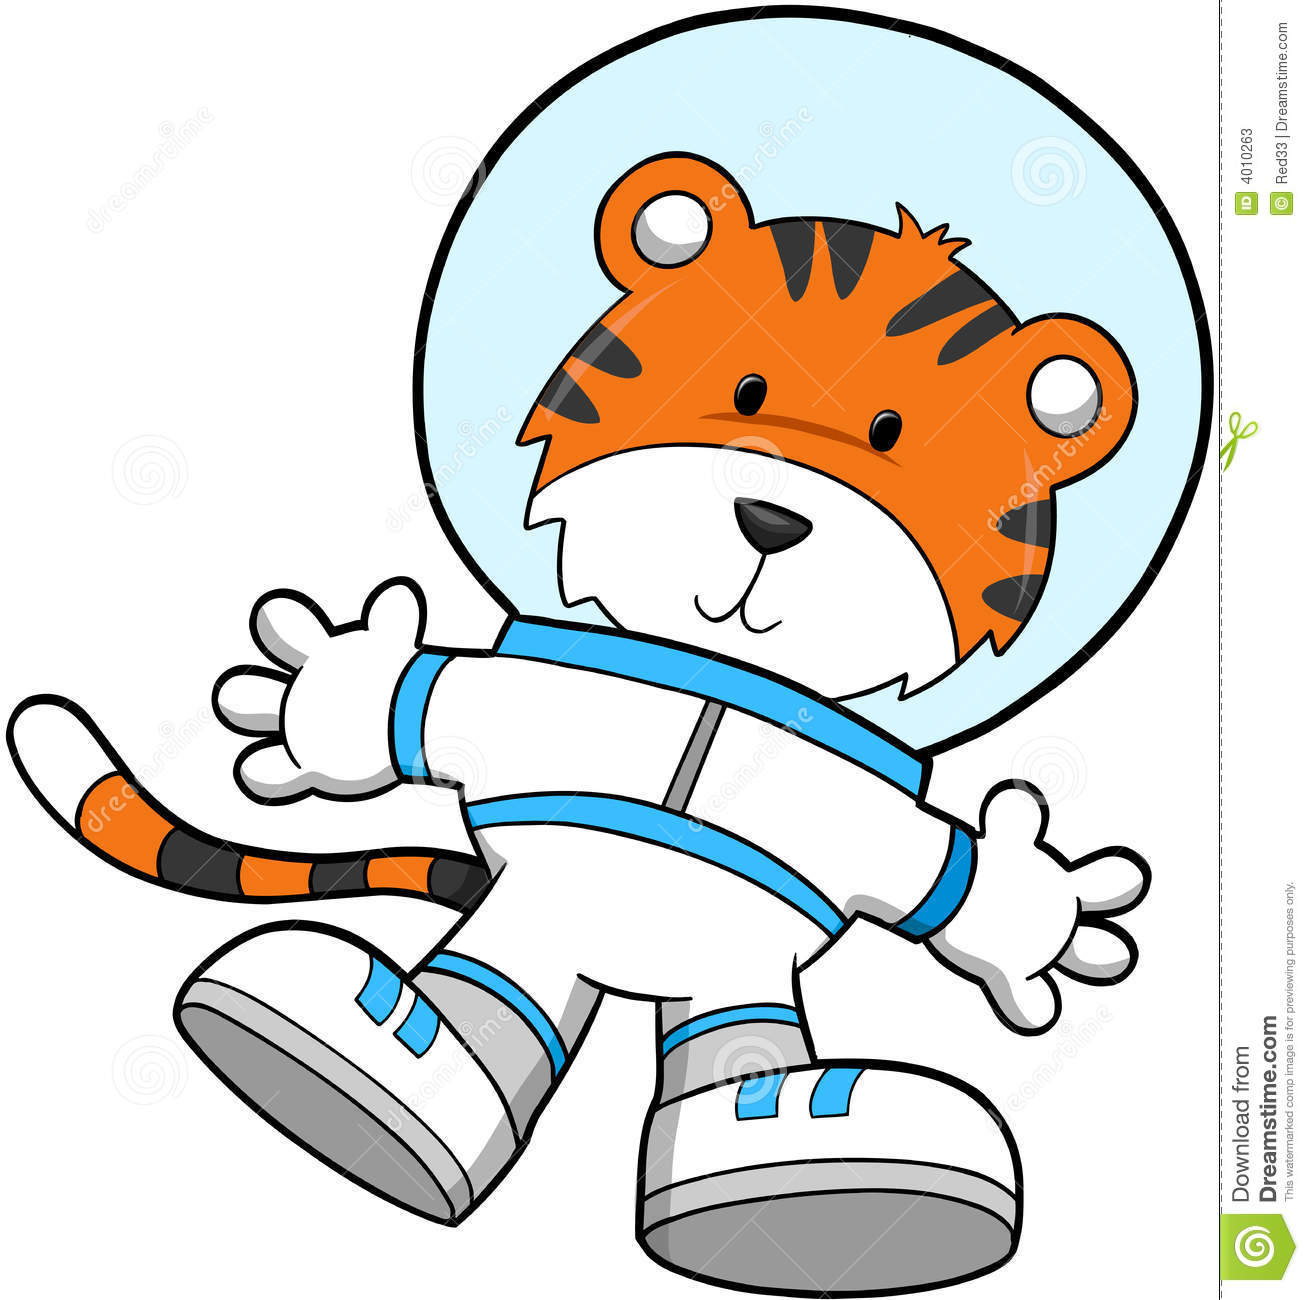 Download Tiger Astronaut stock vector. Illustration of spacesuit - 4010263